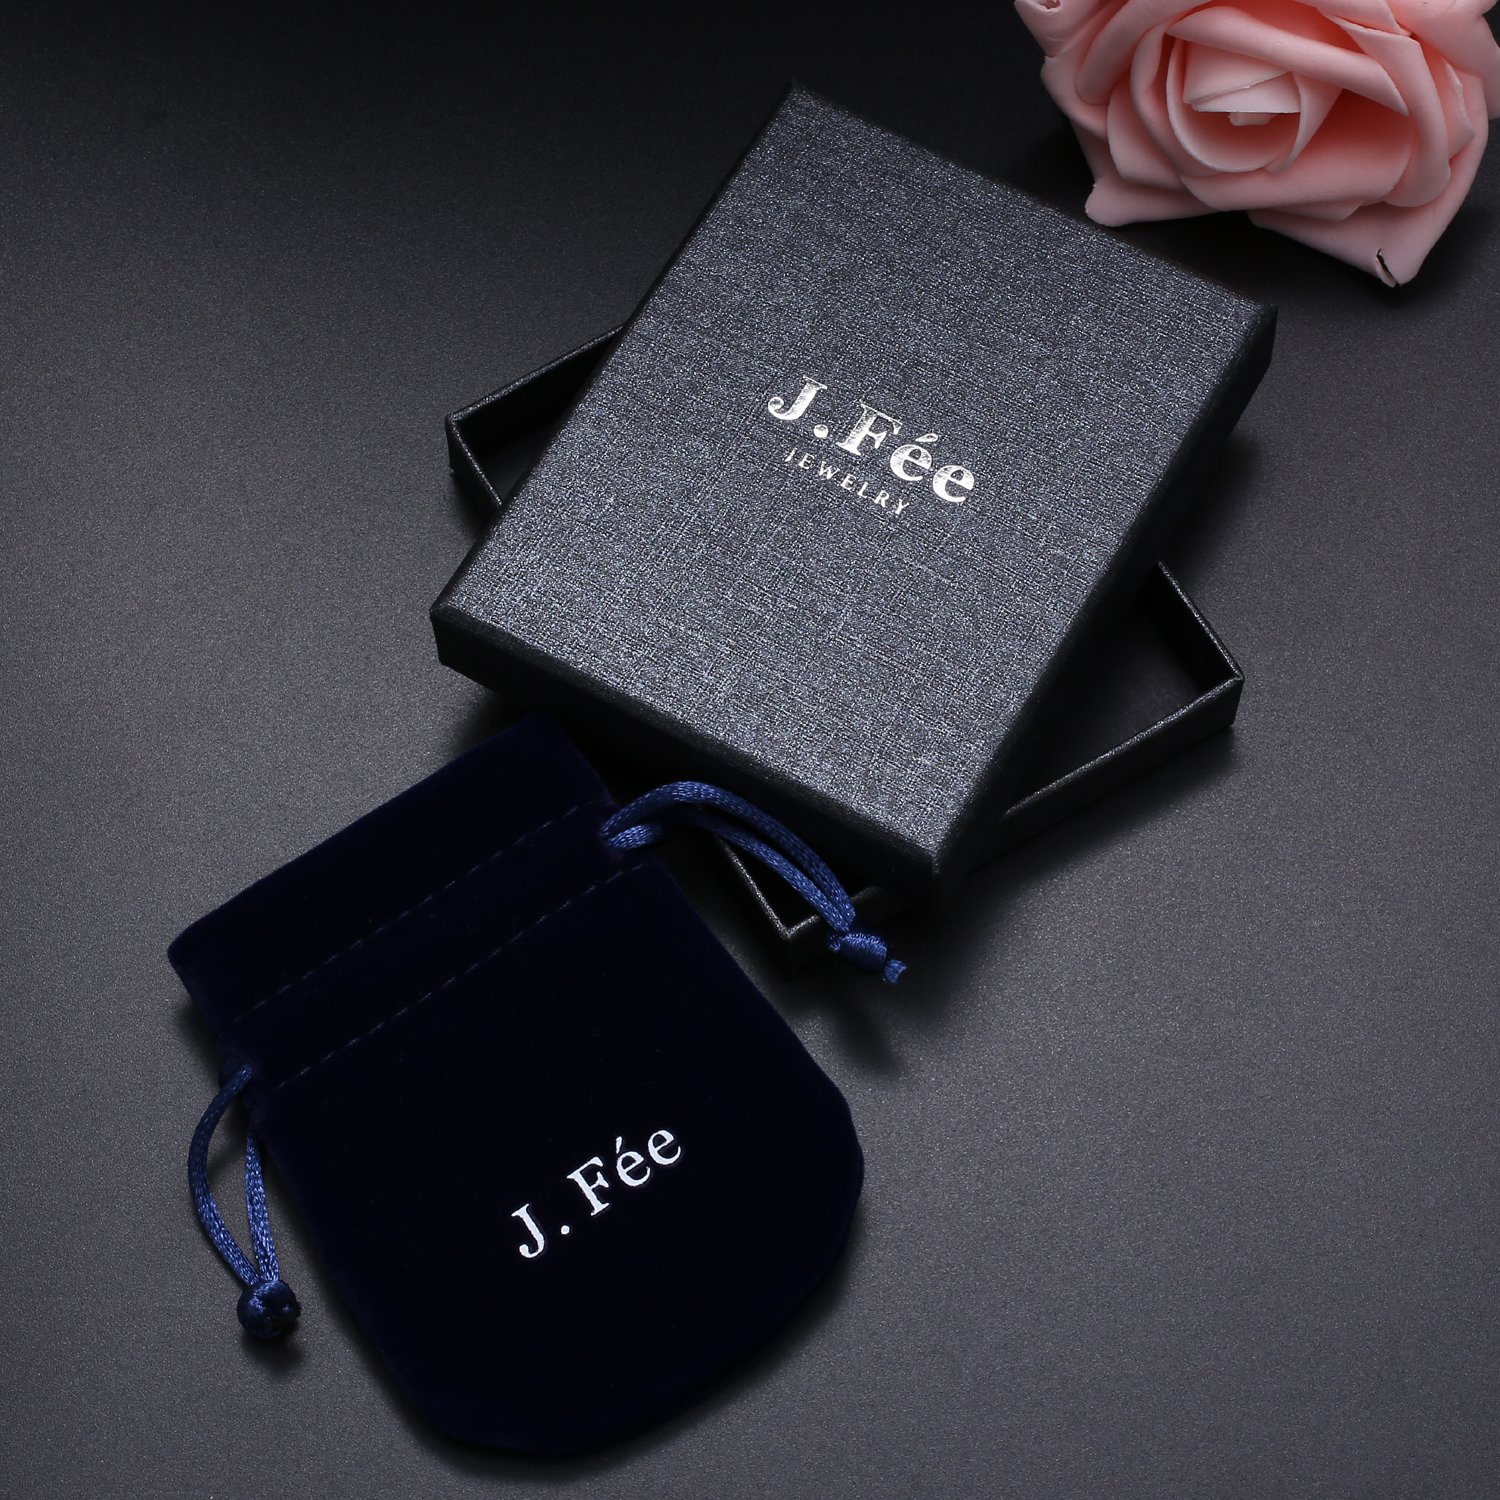 J.Fée Relationship Couples Bracelet His-and-Hers Matte Black Onyx White Howlite Distance Bracelet 7in&8in (7 inch White&Black) by J.Fée (Image #6)